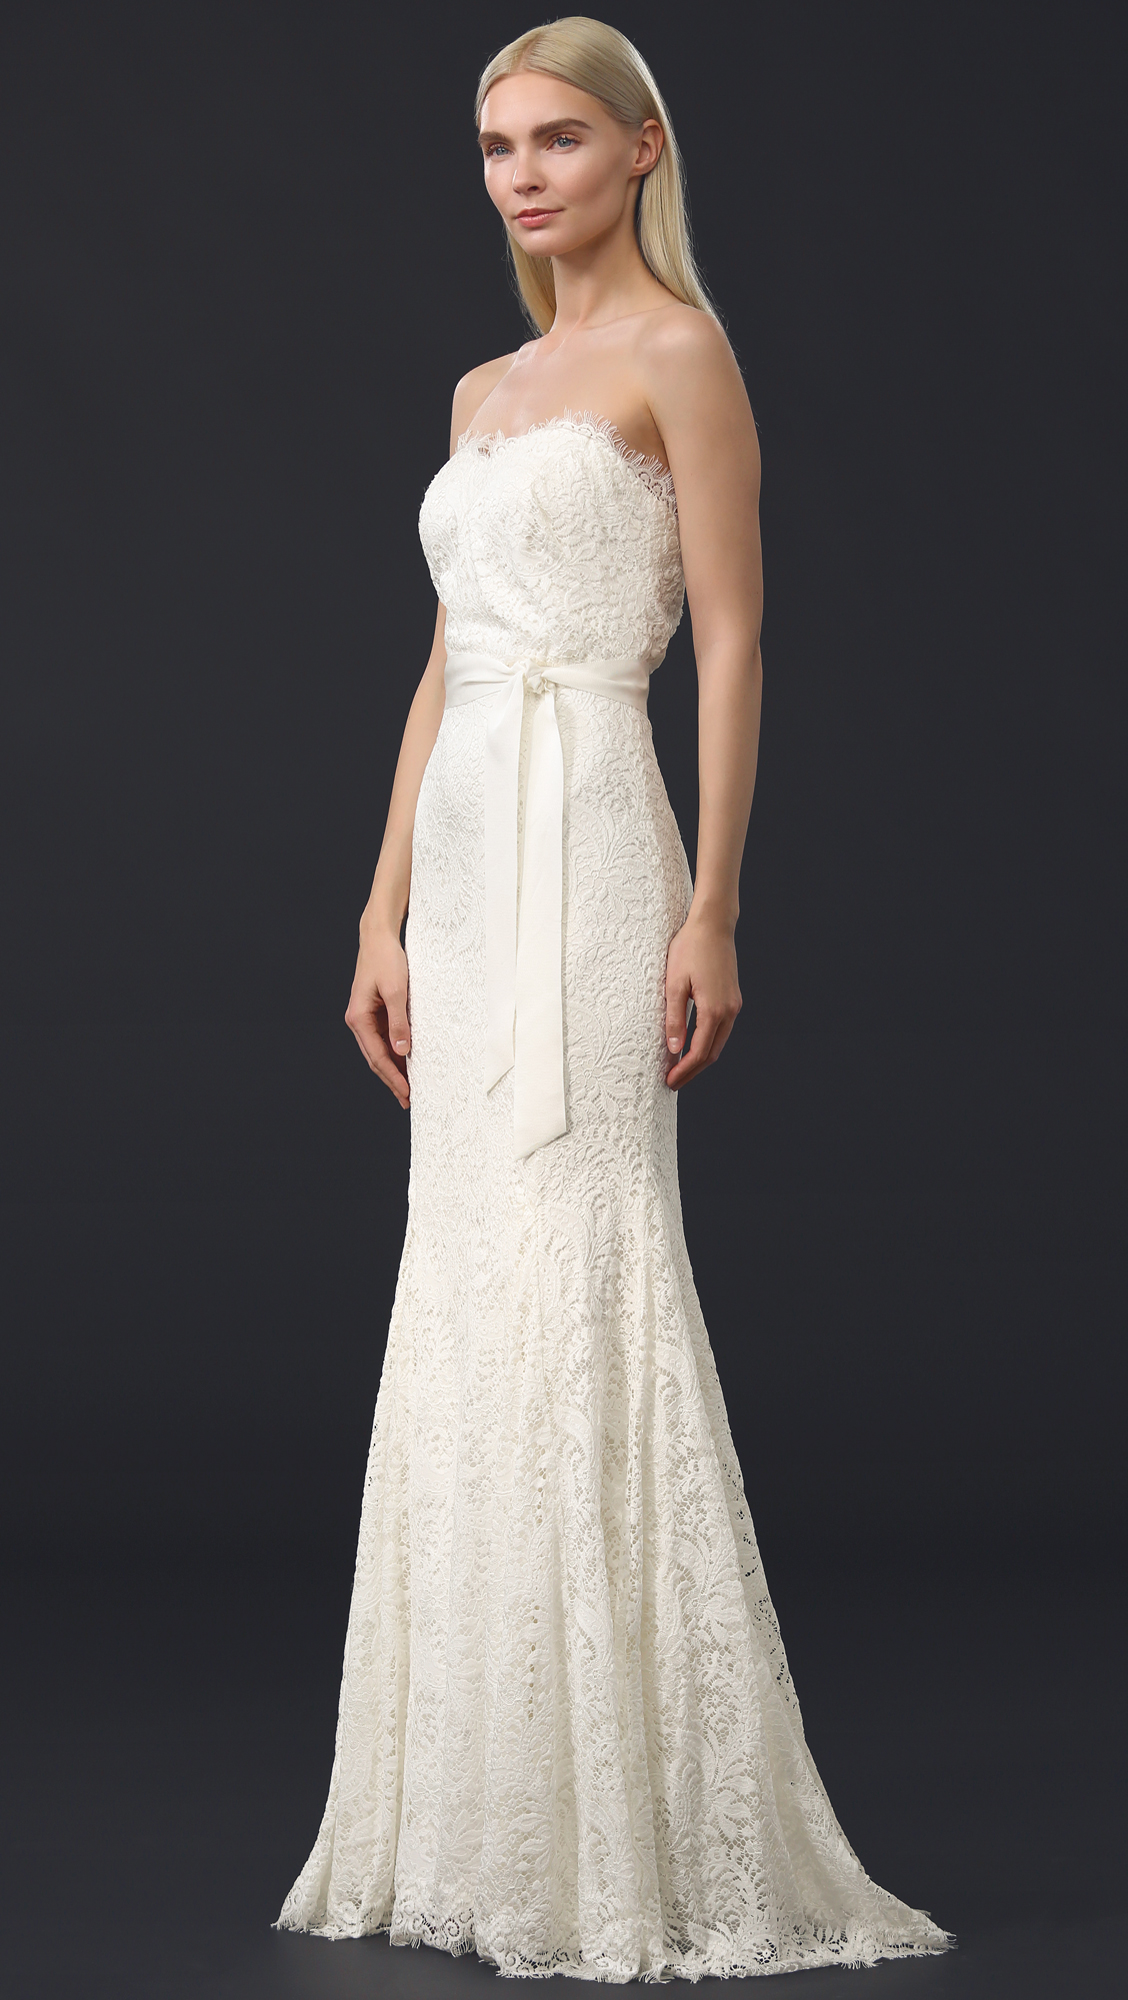 Theia Sweetheart Strapless Lace Gown | SHOPBOP